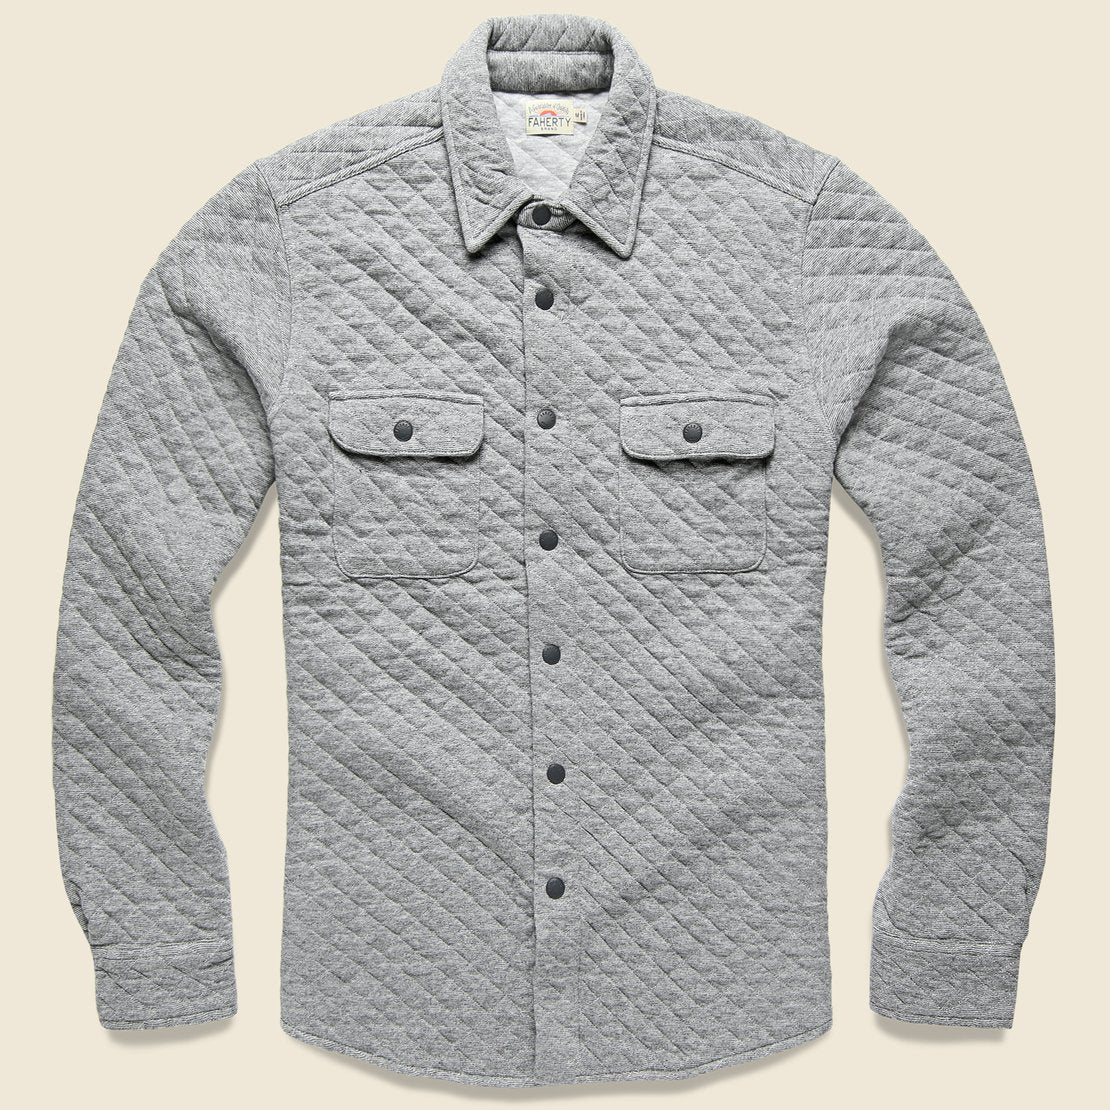 Faherty Quilted Belmar CPO Shirt Jacket - Grey Feeder Stripe